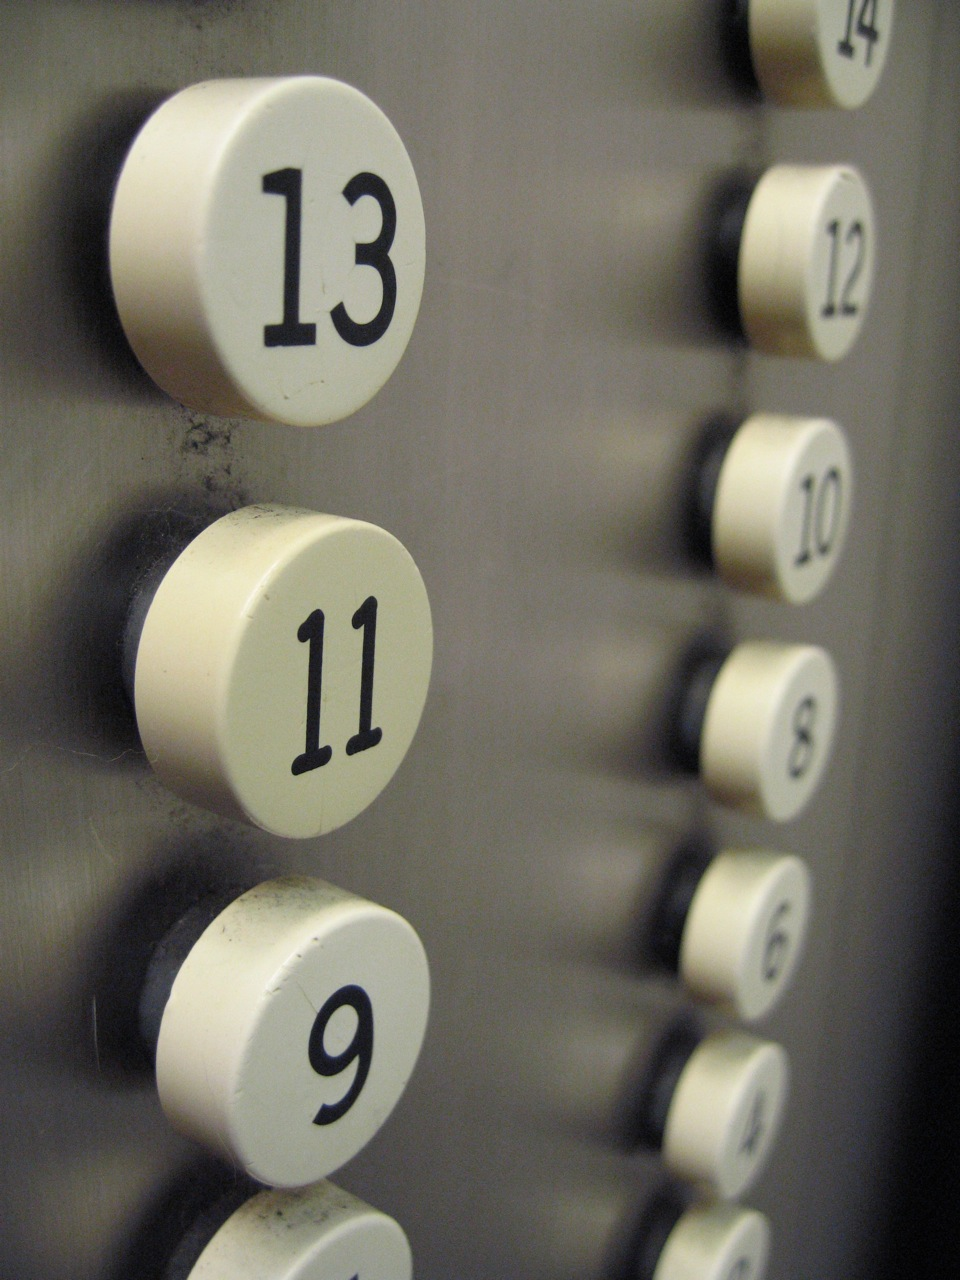 Six tips on perfecting your elevator pitch